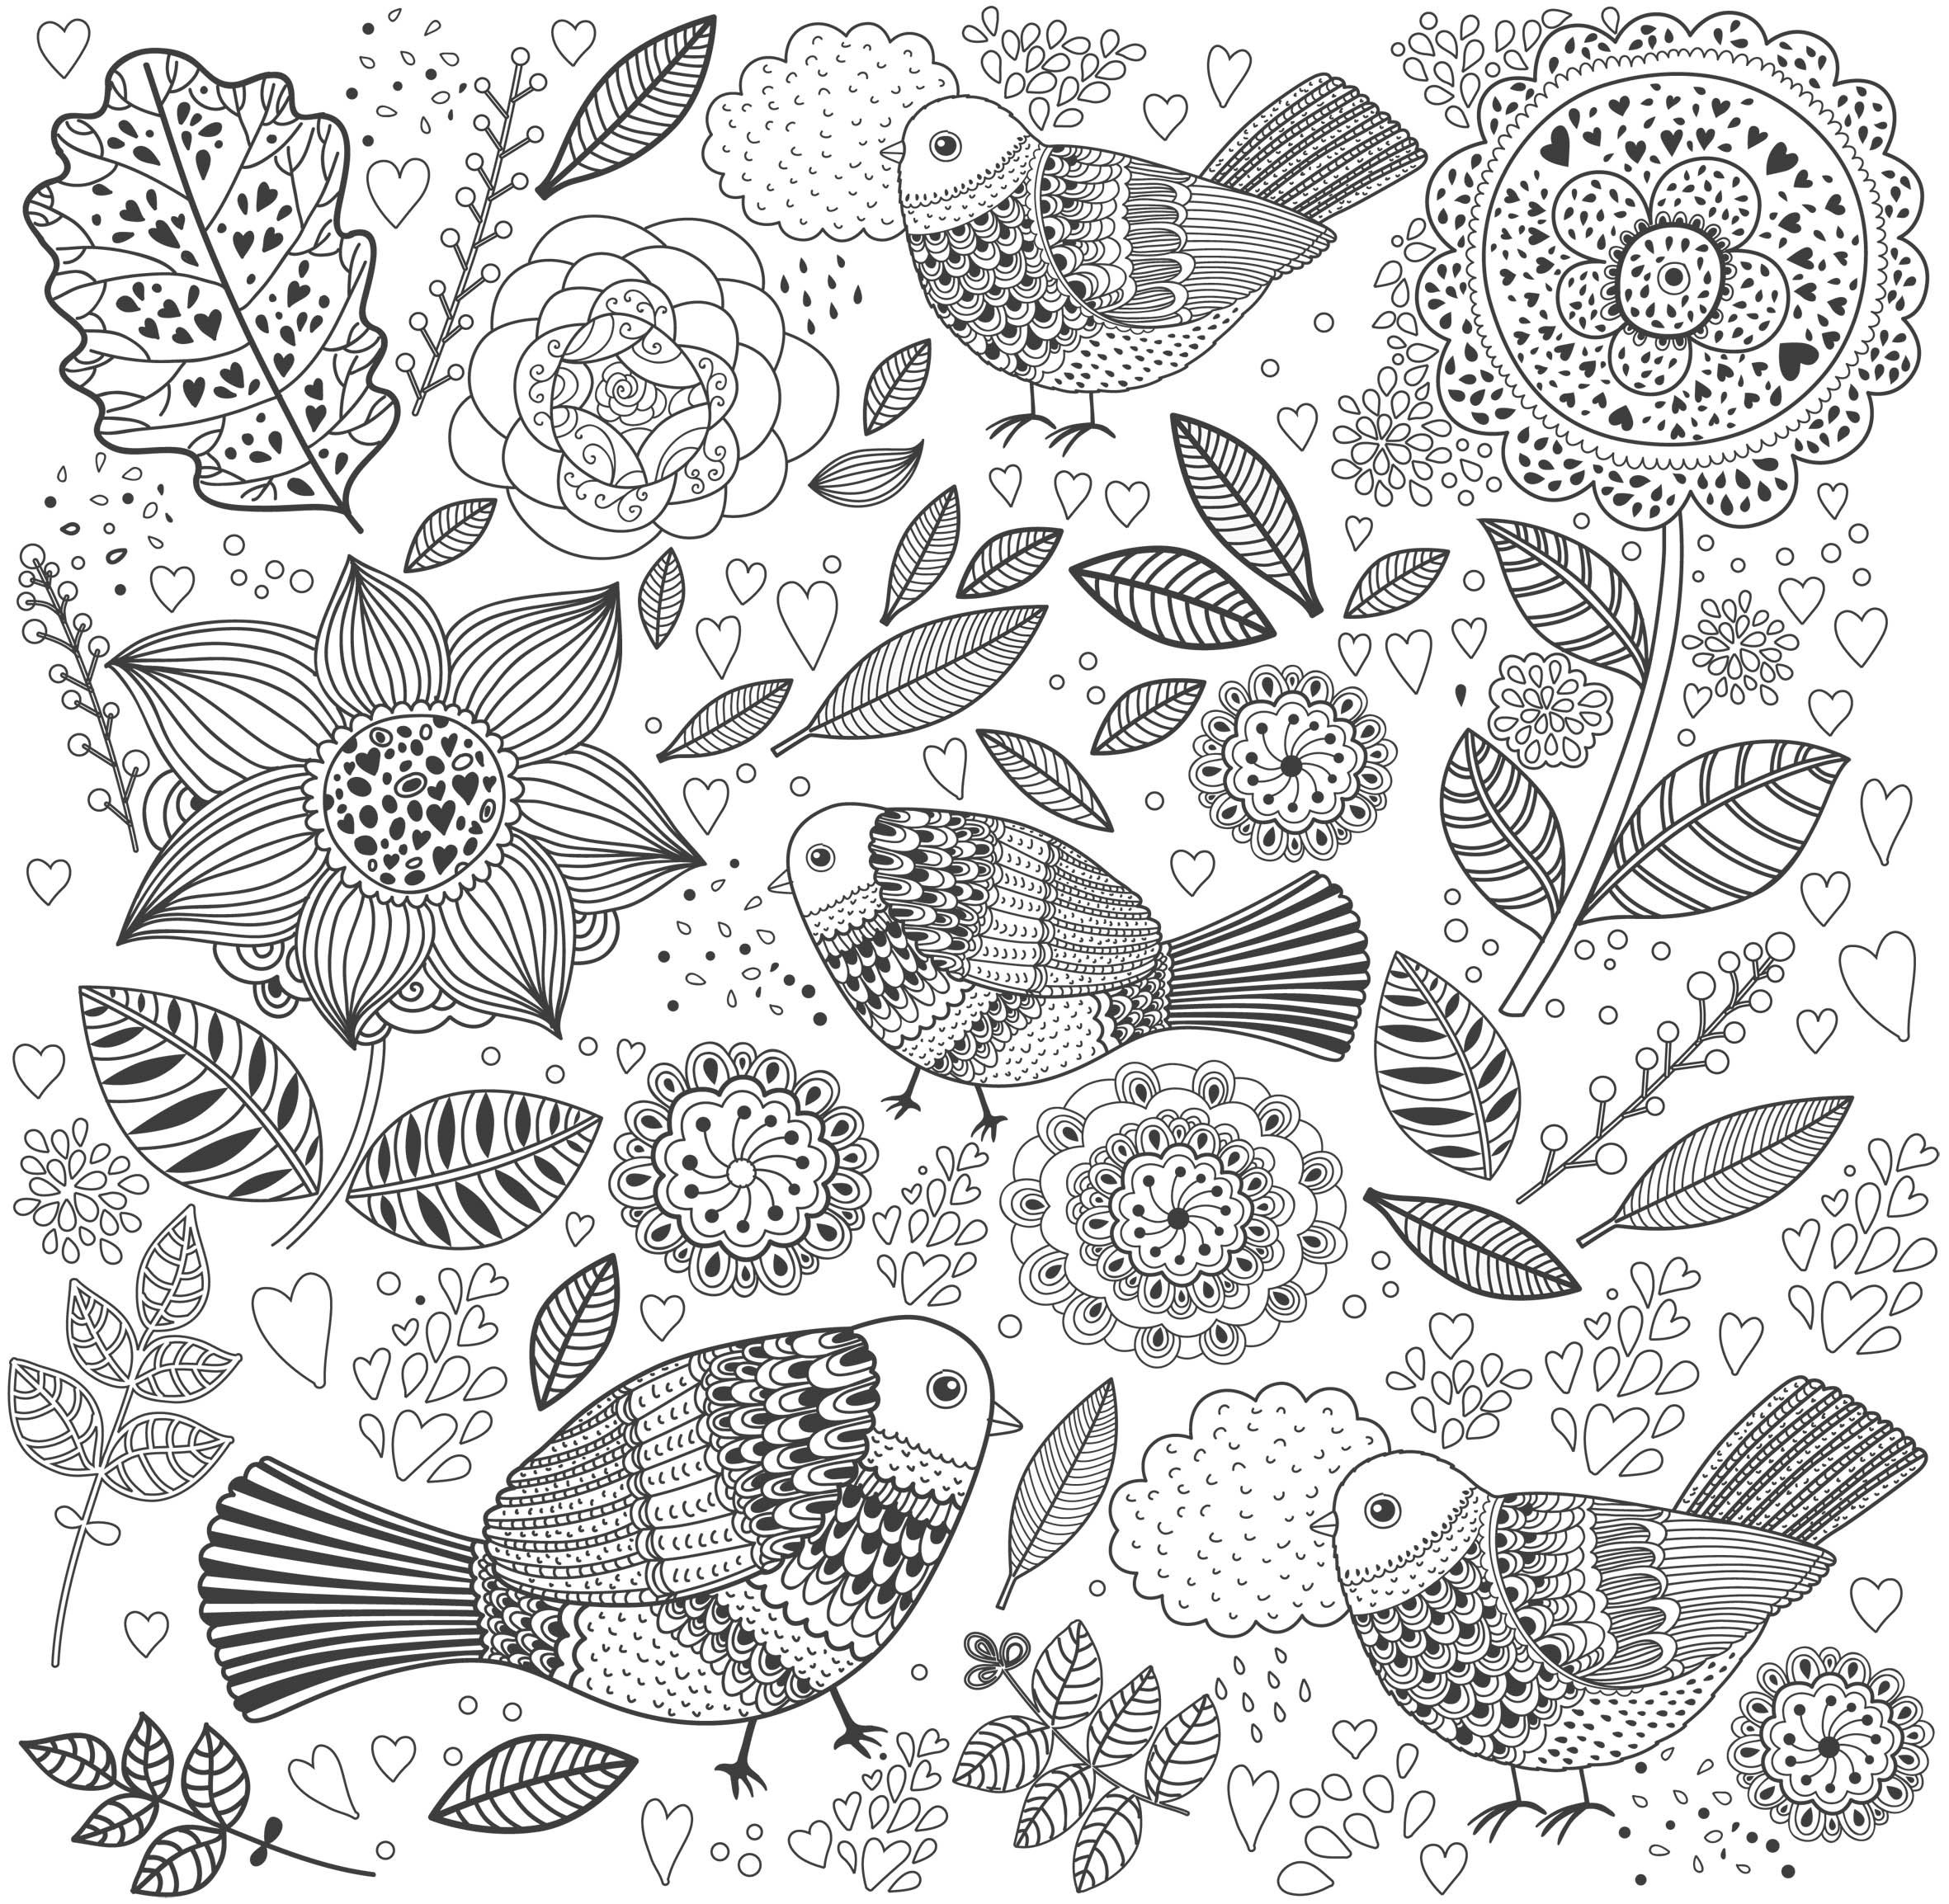 coloriage anti stress adulte en ligne